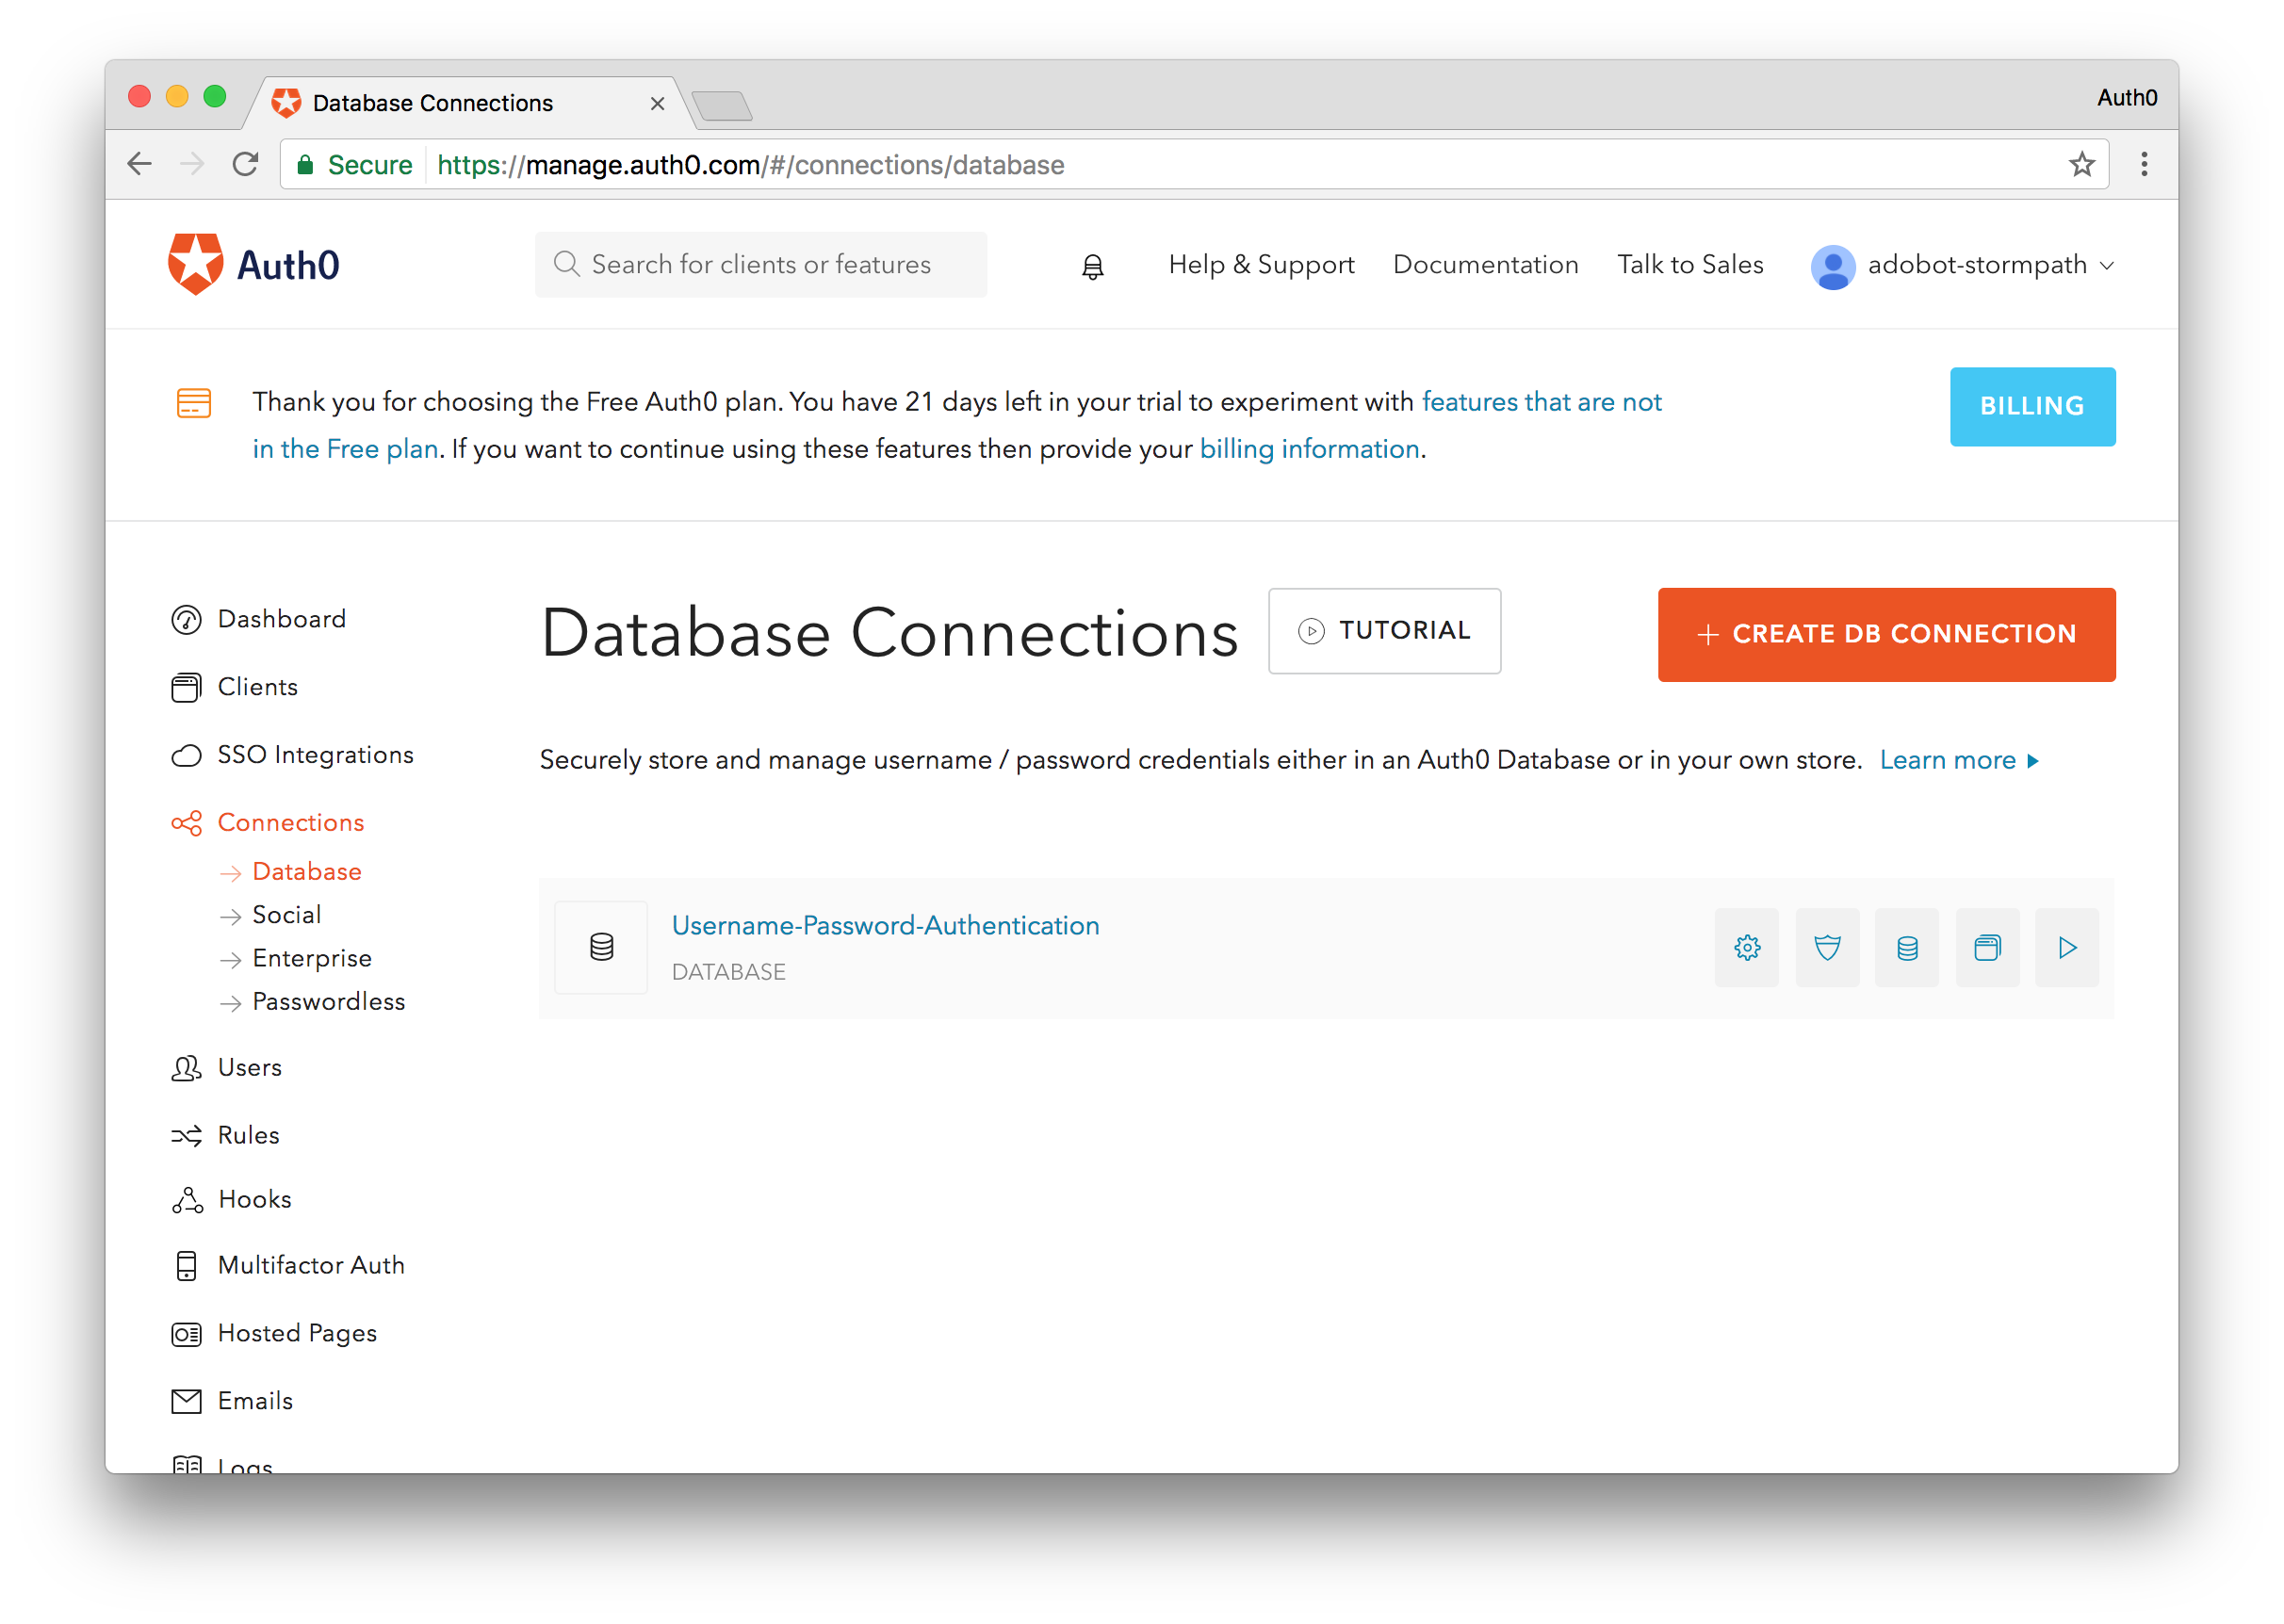 Create DB Connection